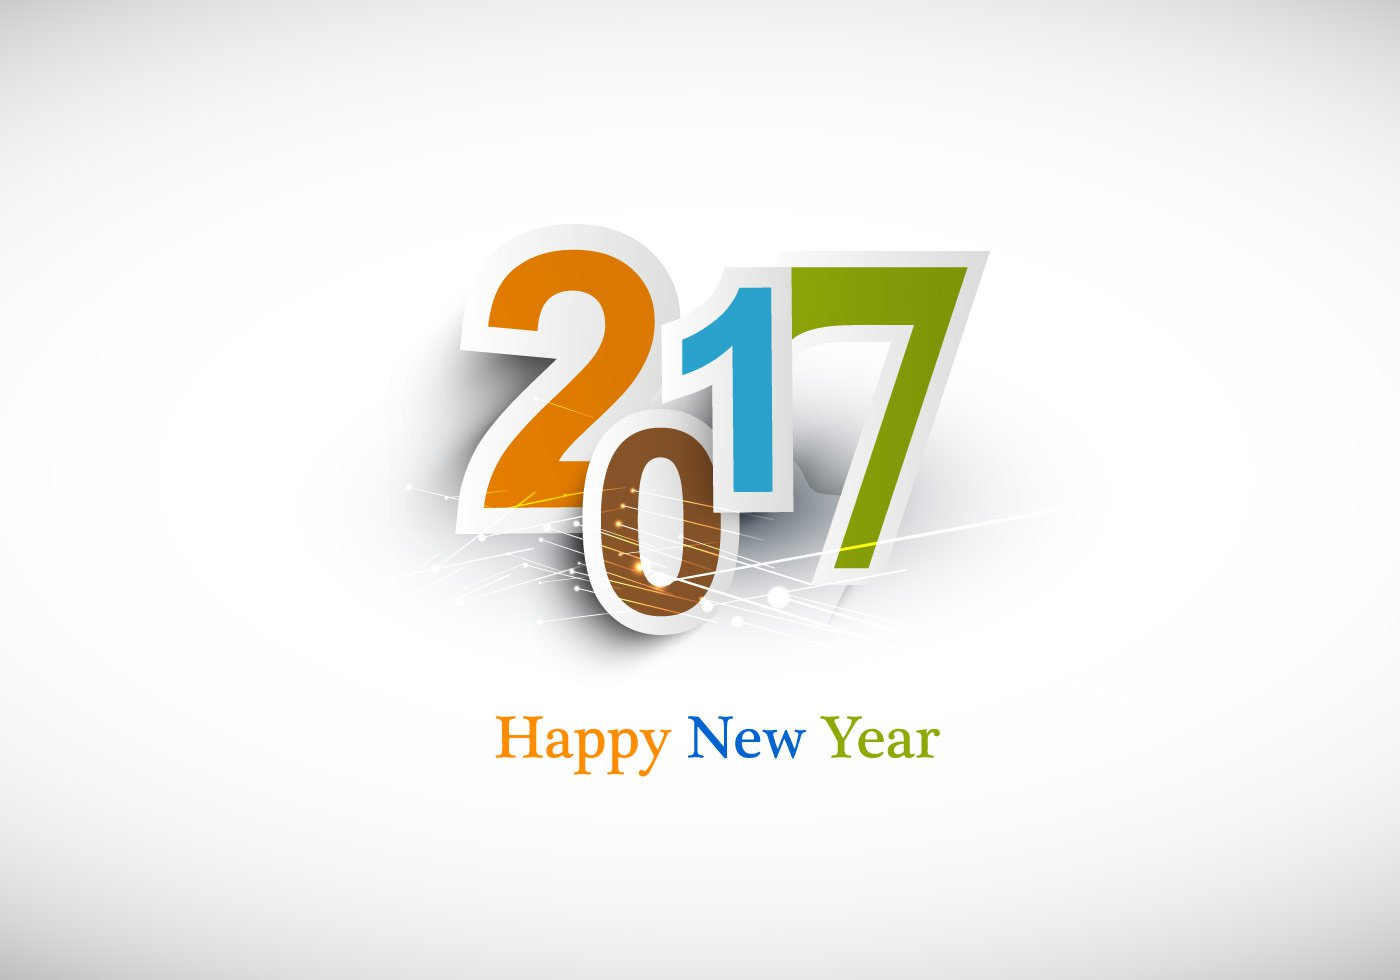 Happy New Year 2017 Wallpapers Collections